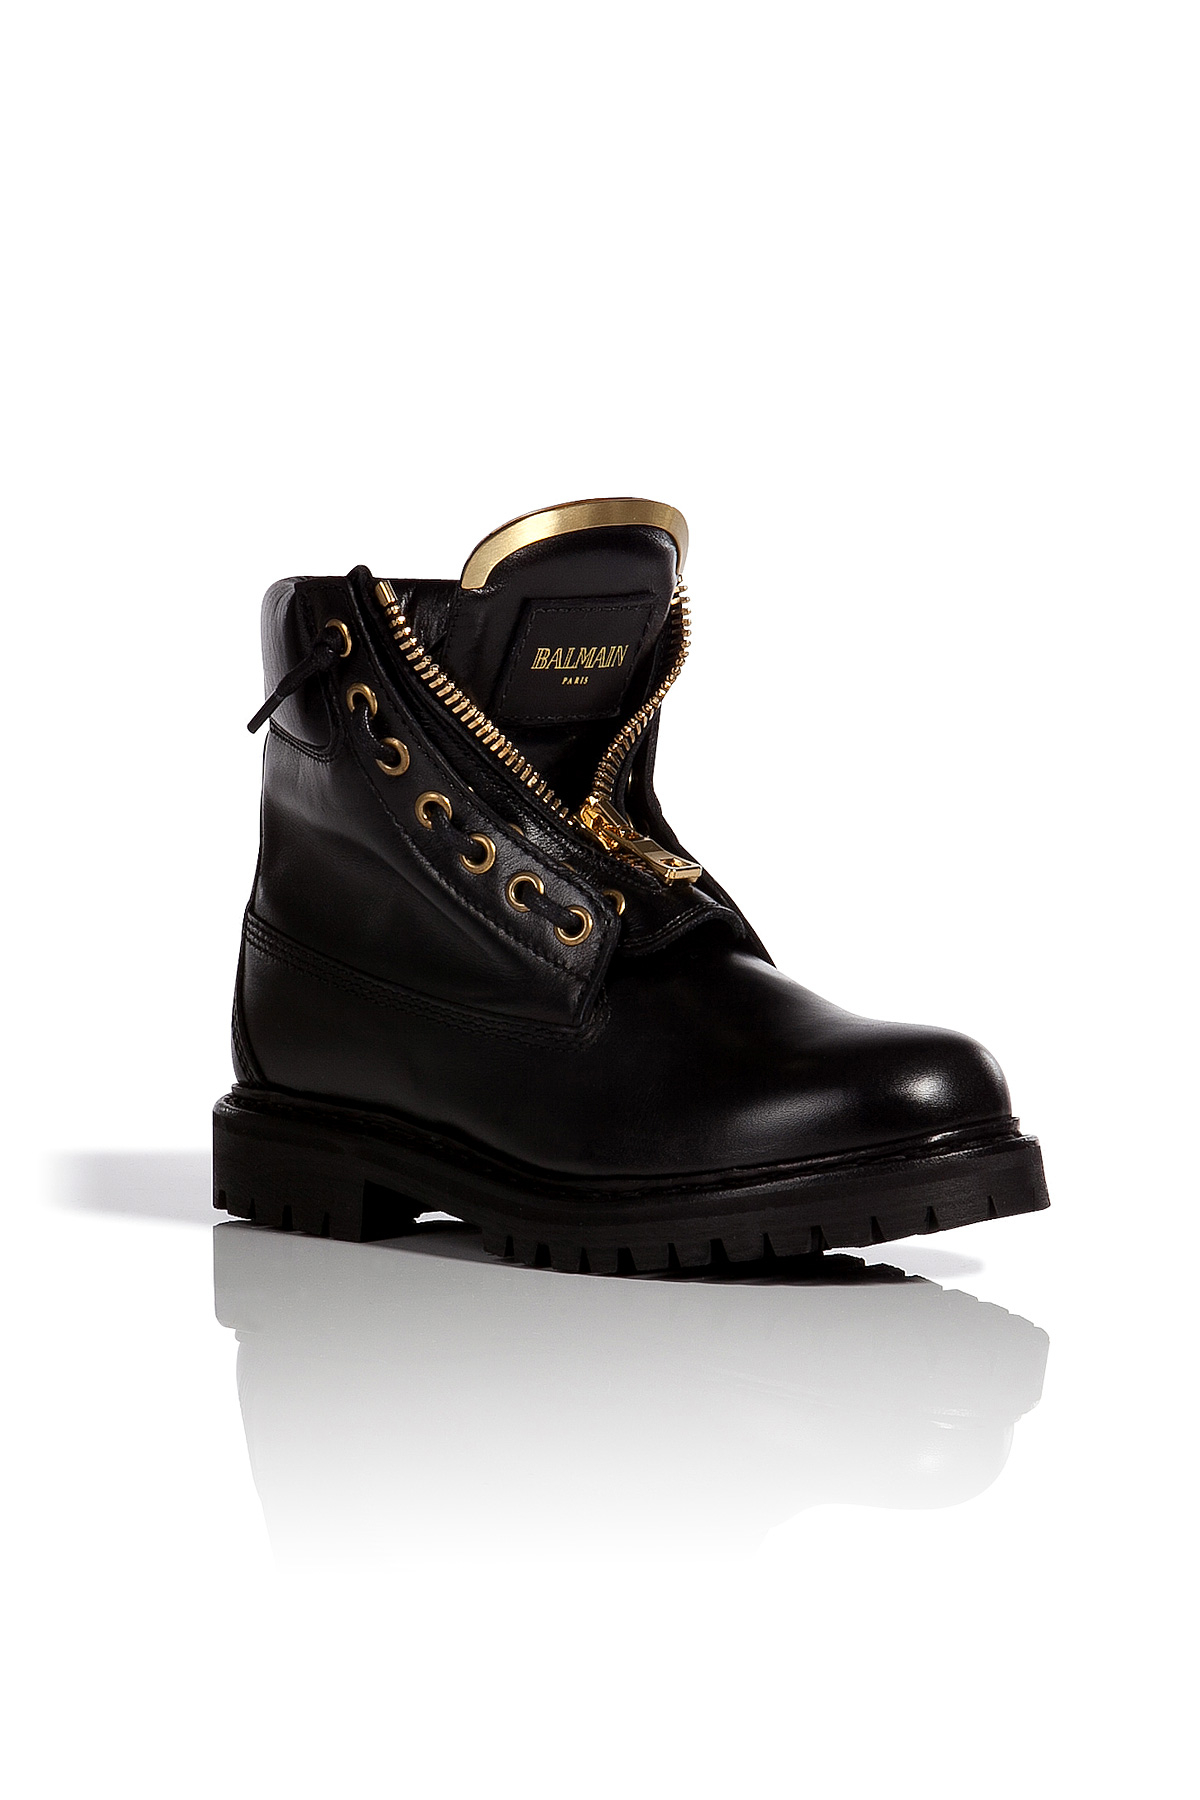 cc0ad845ef6 Balmain Leather Taiga Ranger Boots in Black - Lyst